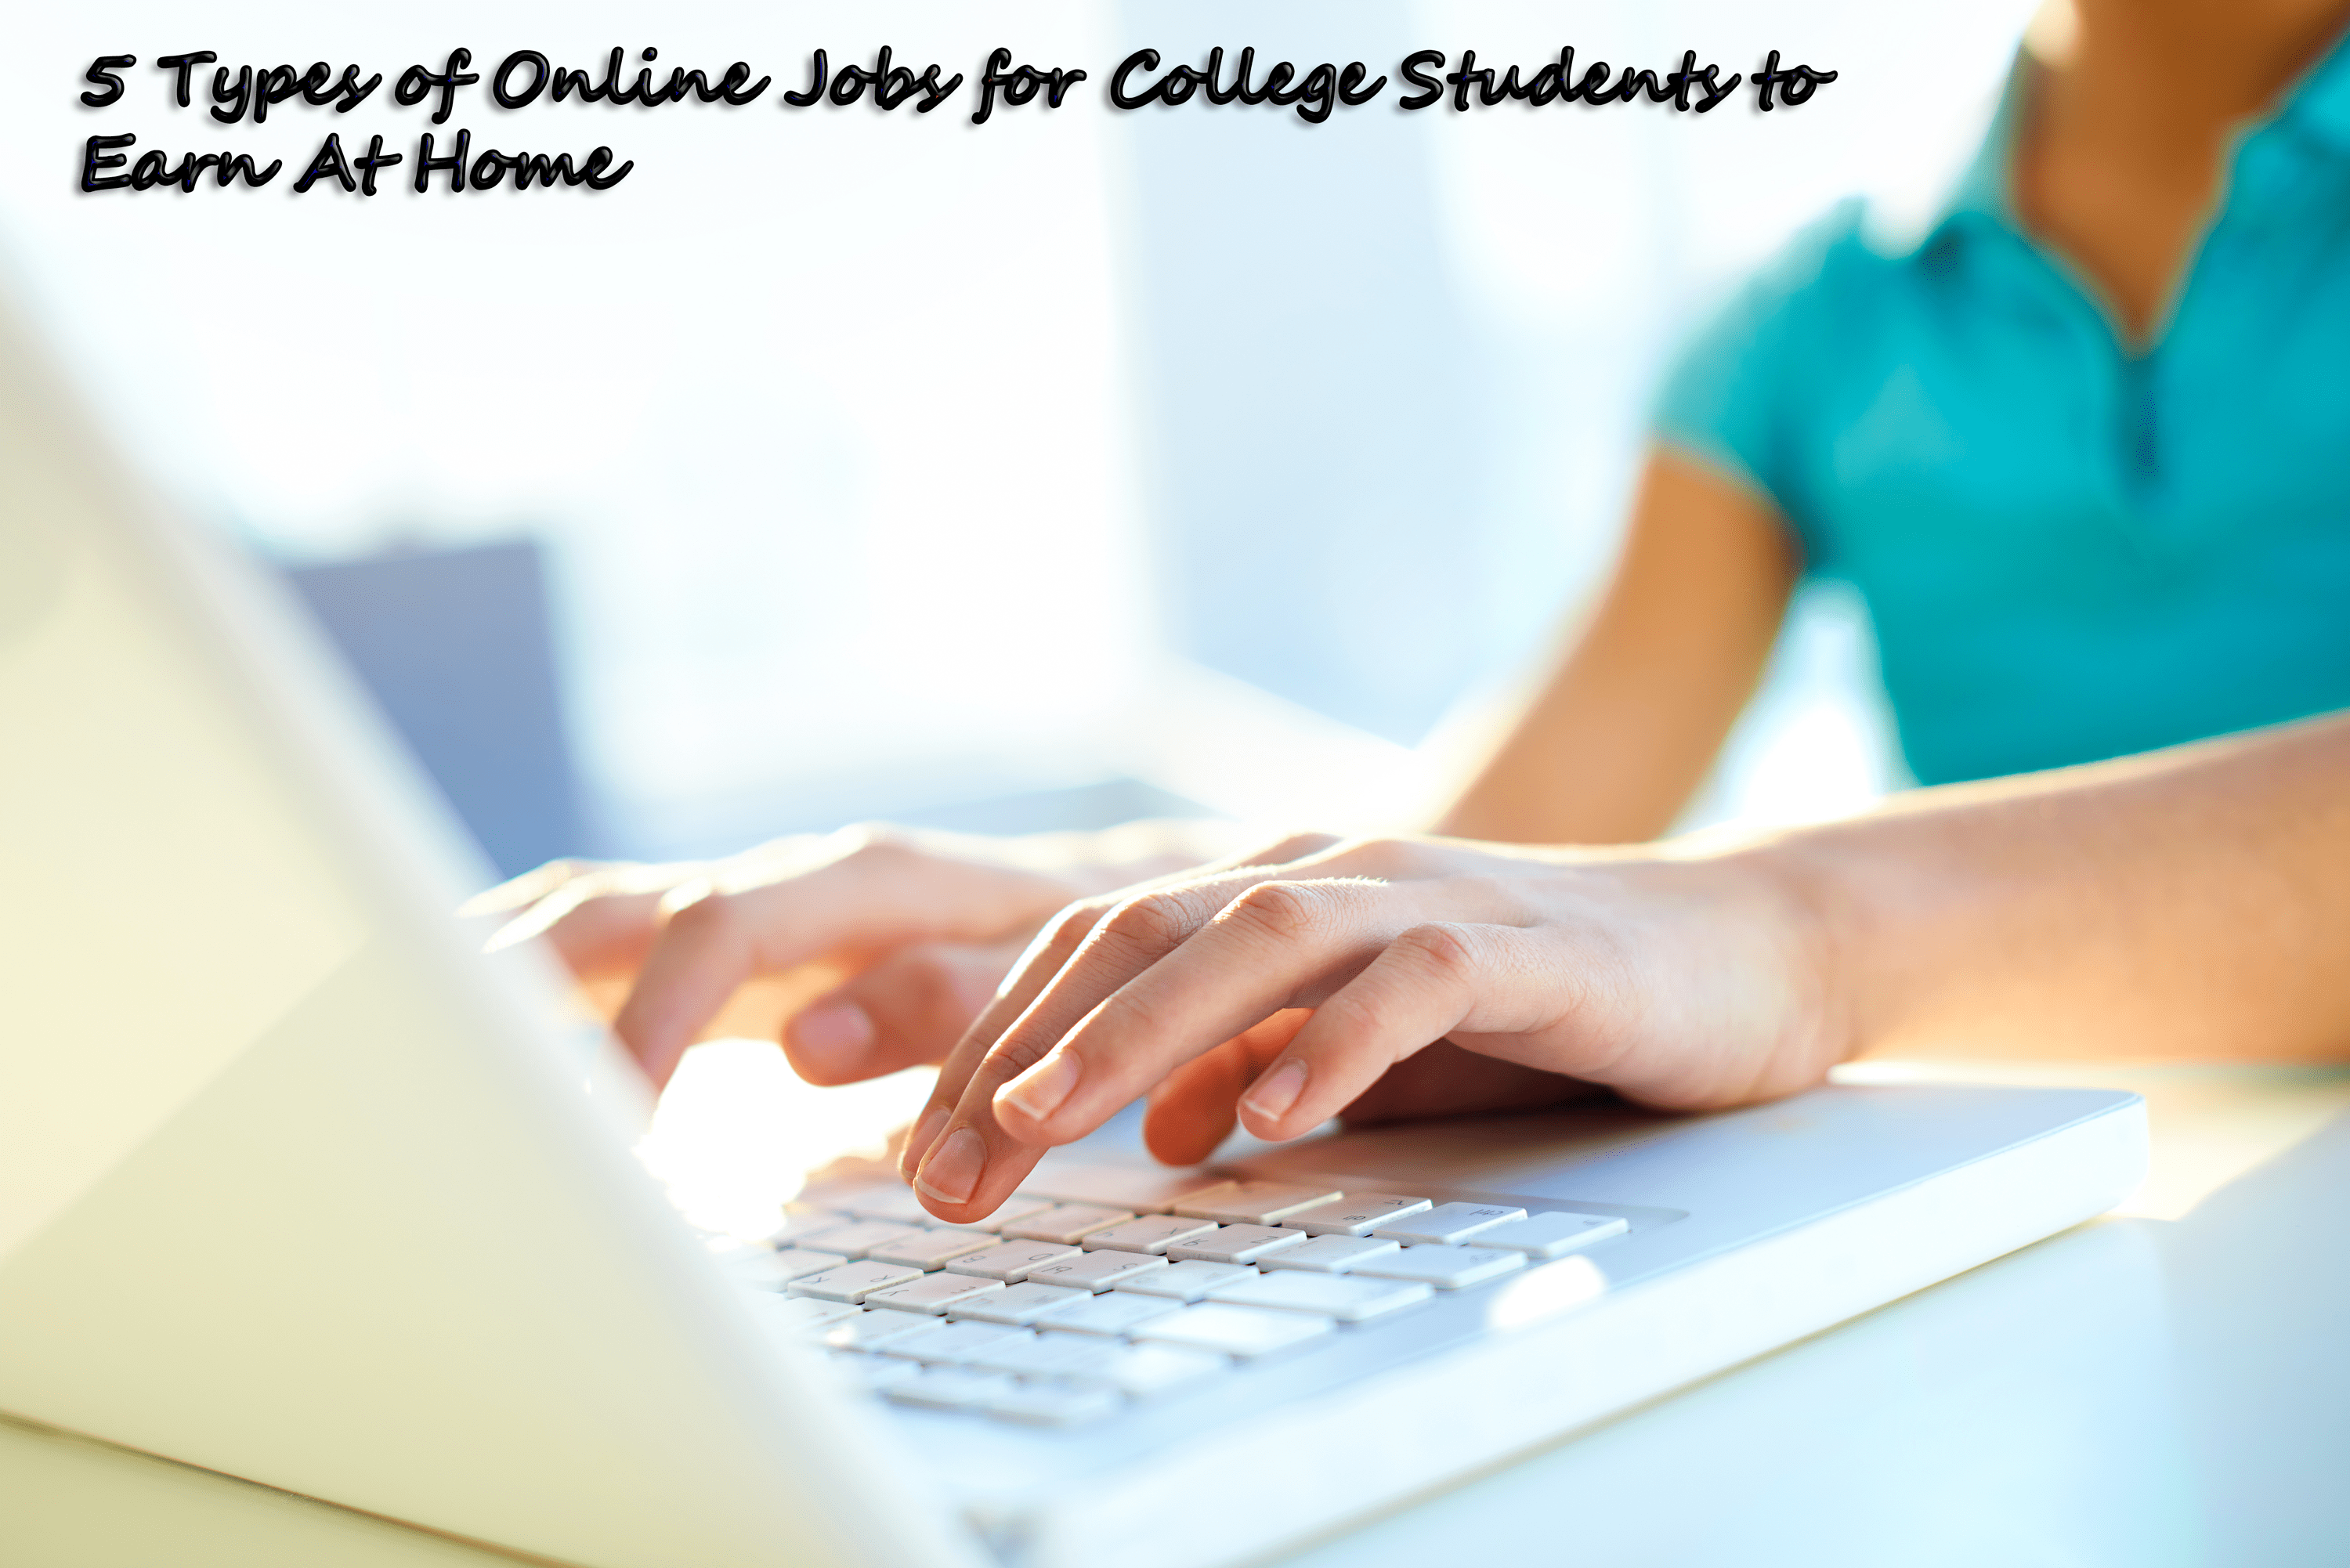 5 types of online jobs for college